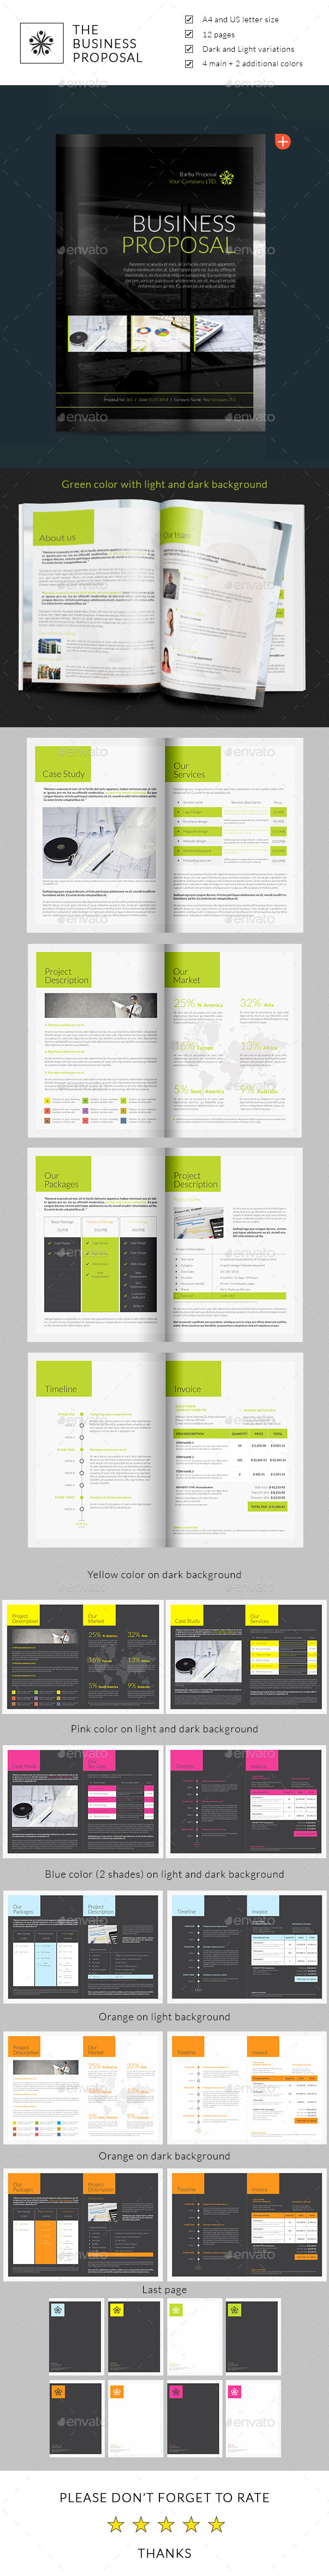 GraphicRiver Business Proposal 8955730